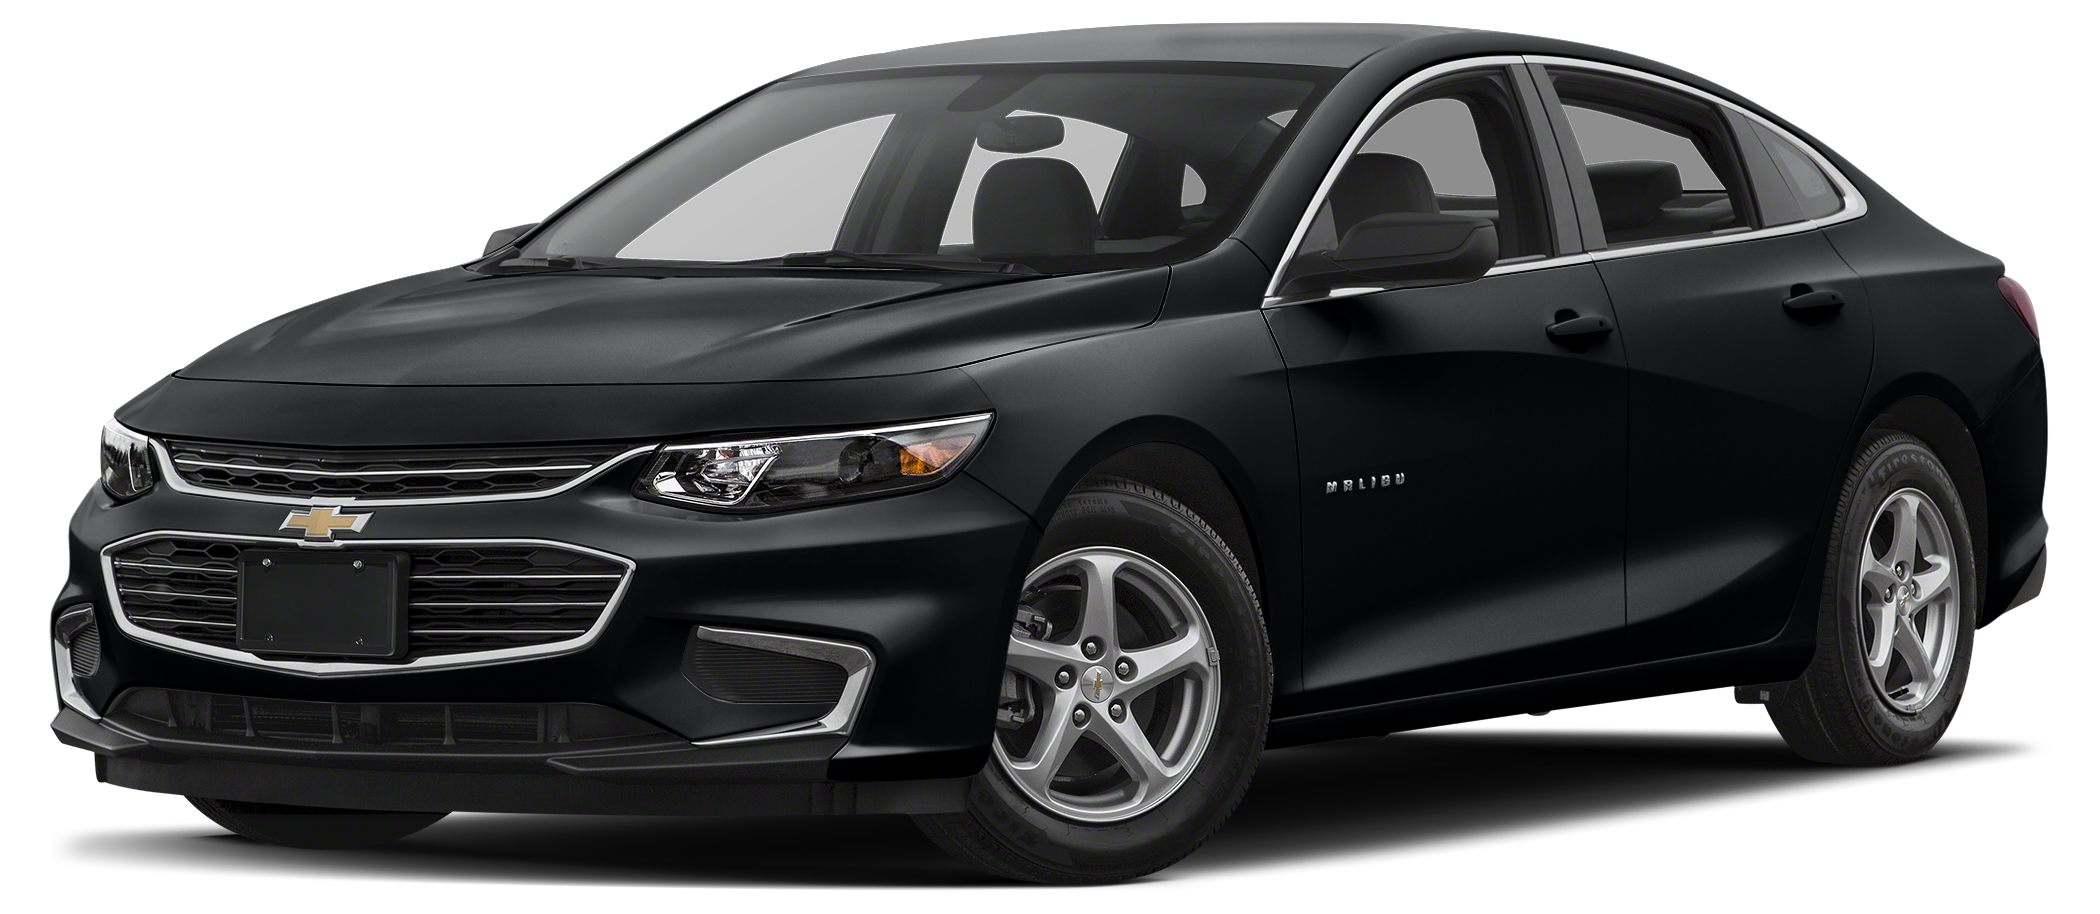 2018 Chevrolet Malibu LS w1LS Prior dealer loaner vehicle Jet Black Mosaic Black Metallic 2018